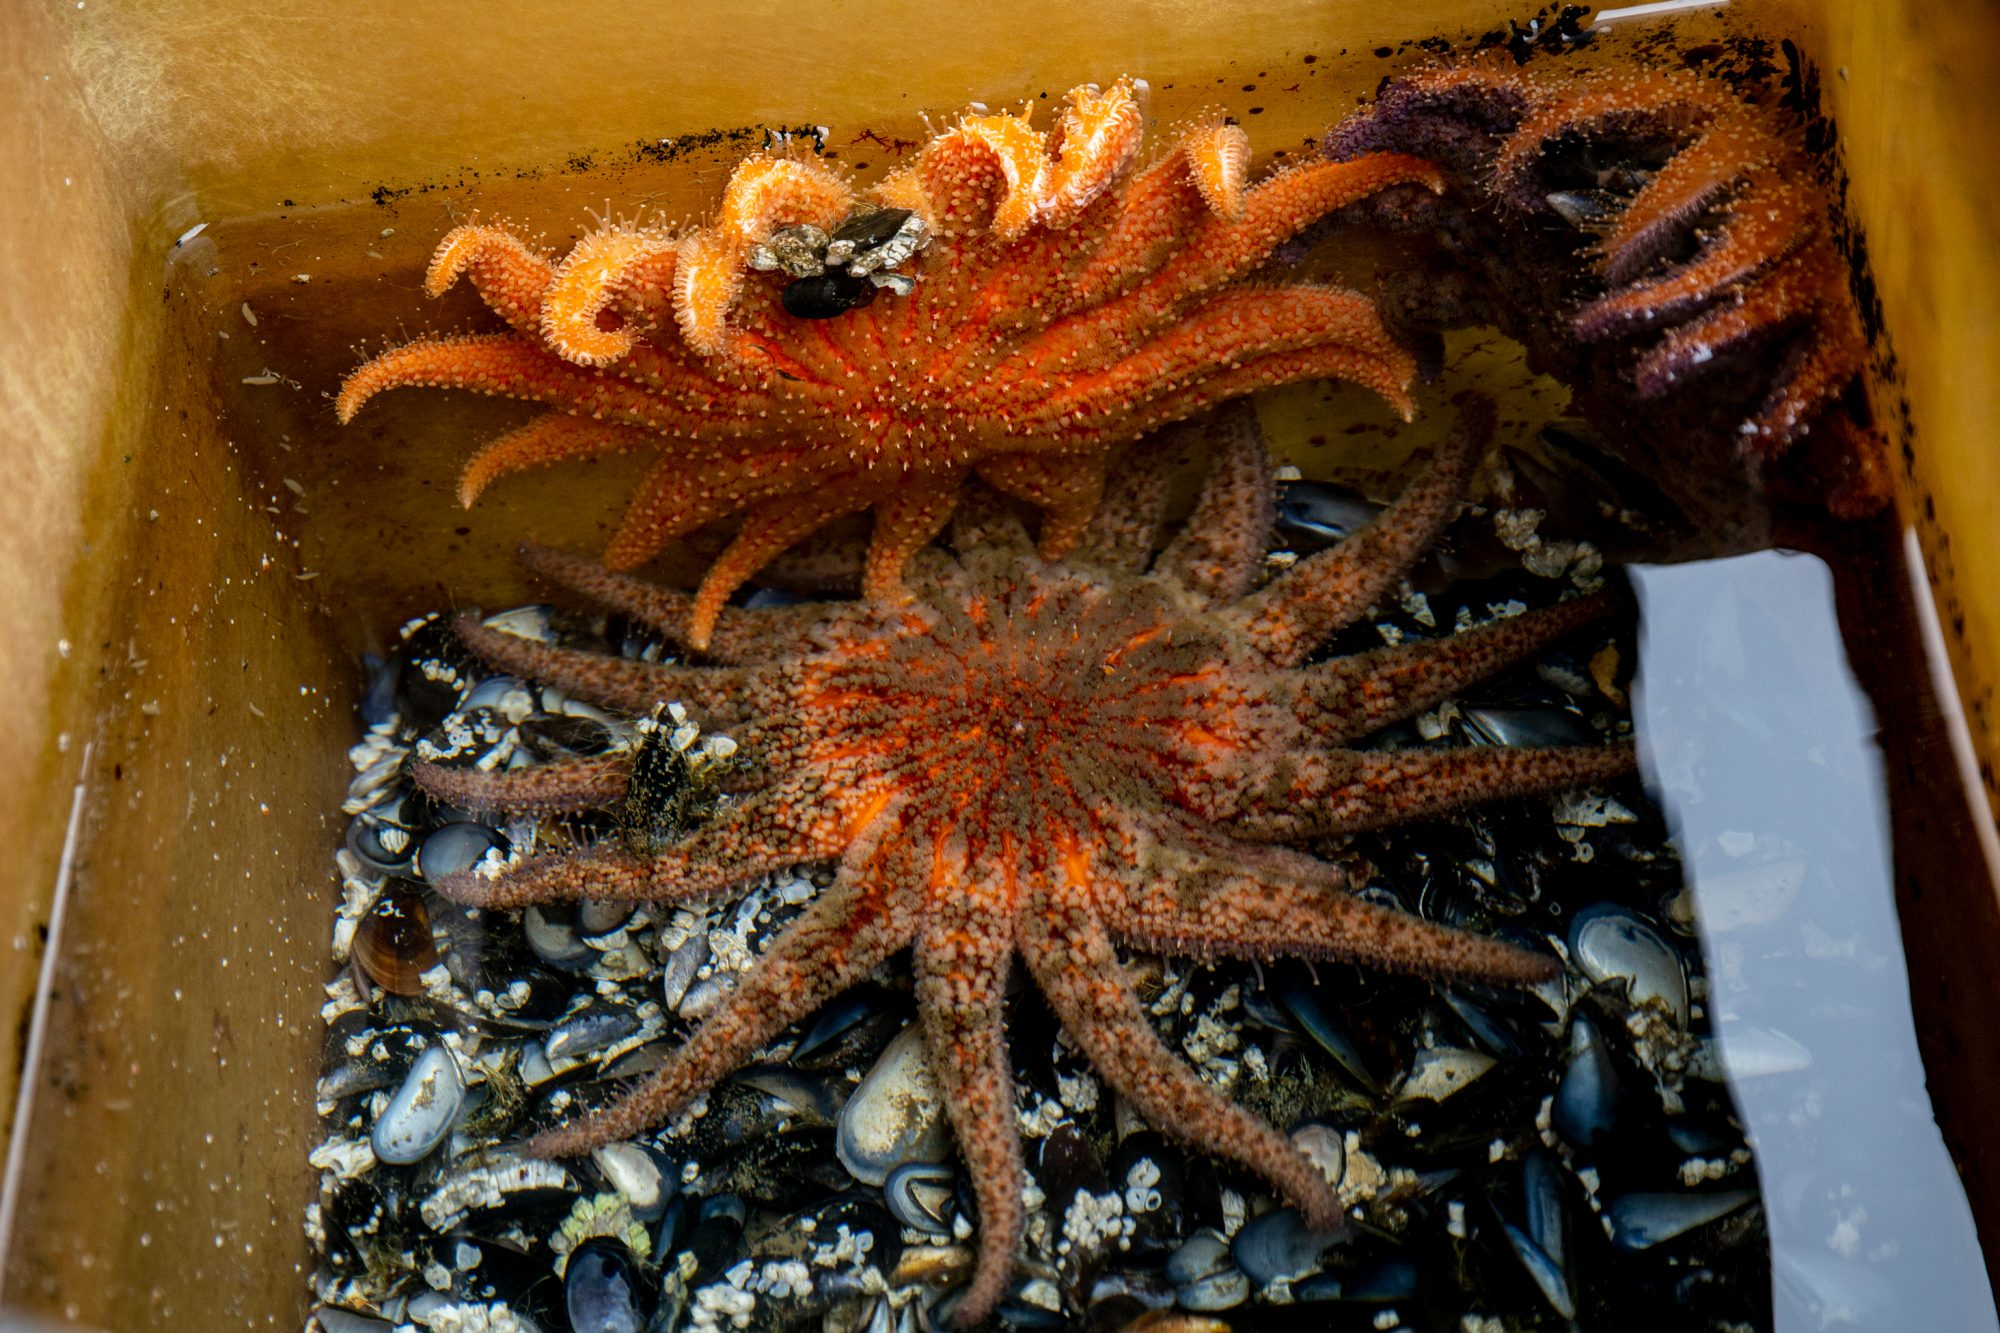 Adult sunflower sea stars feeding on mussels at UW Friday Harbor Laboratories. The stars suck out and ingest the soft tissues of mussels, then discard the shells, which collect at the bottom of the tank.